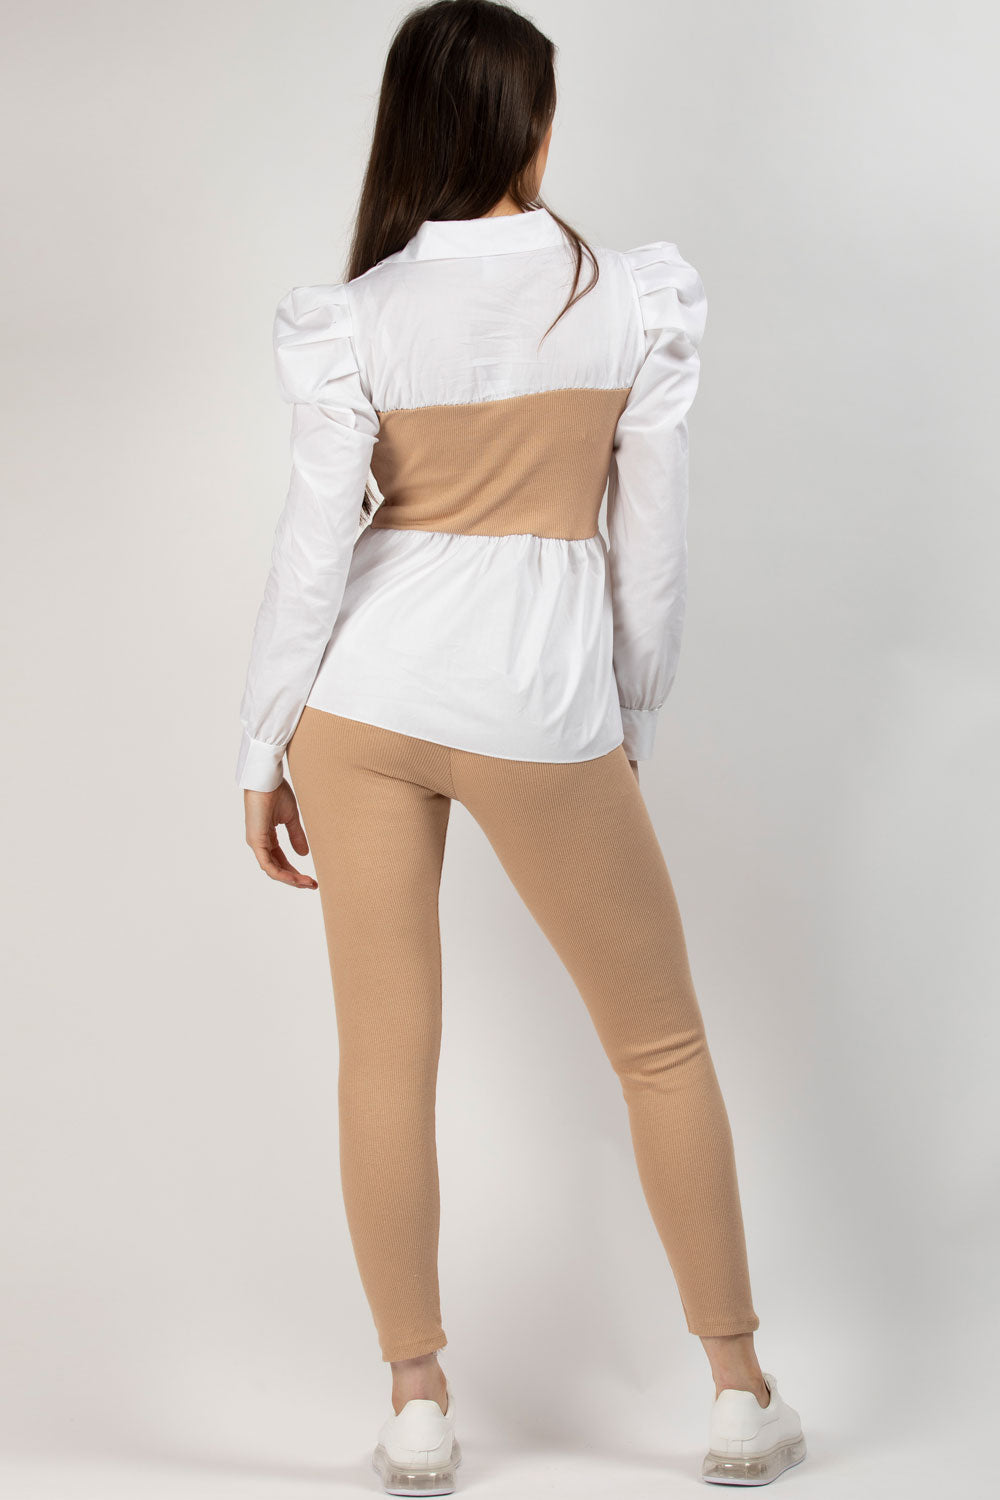 stone ribbed shirt top and leggings set